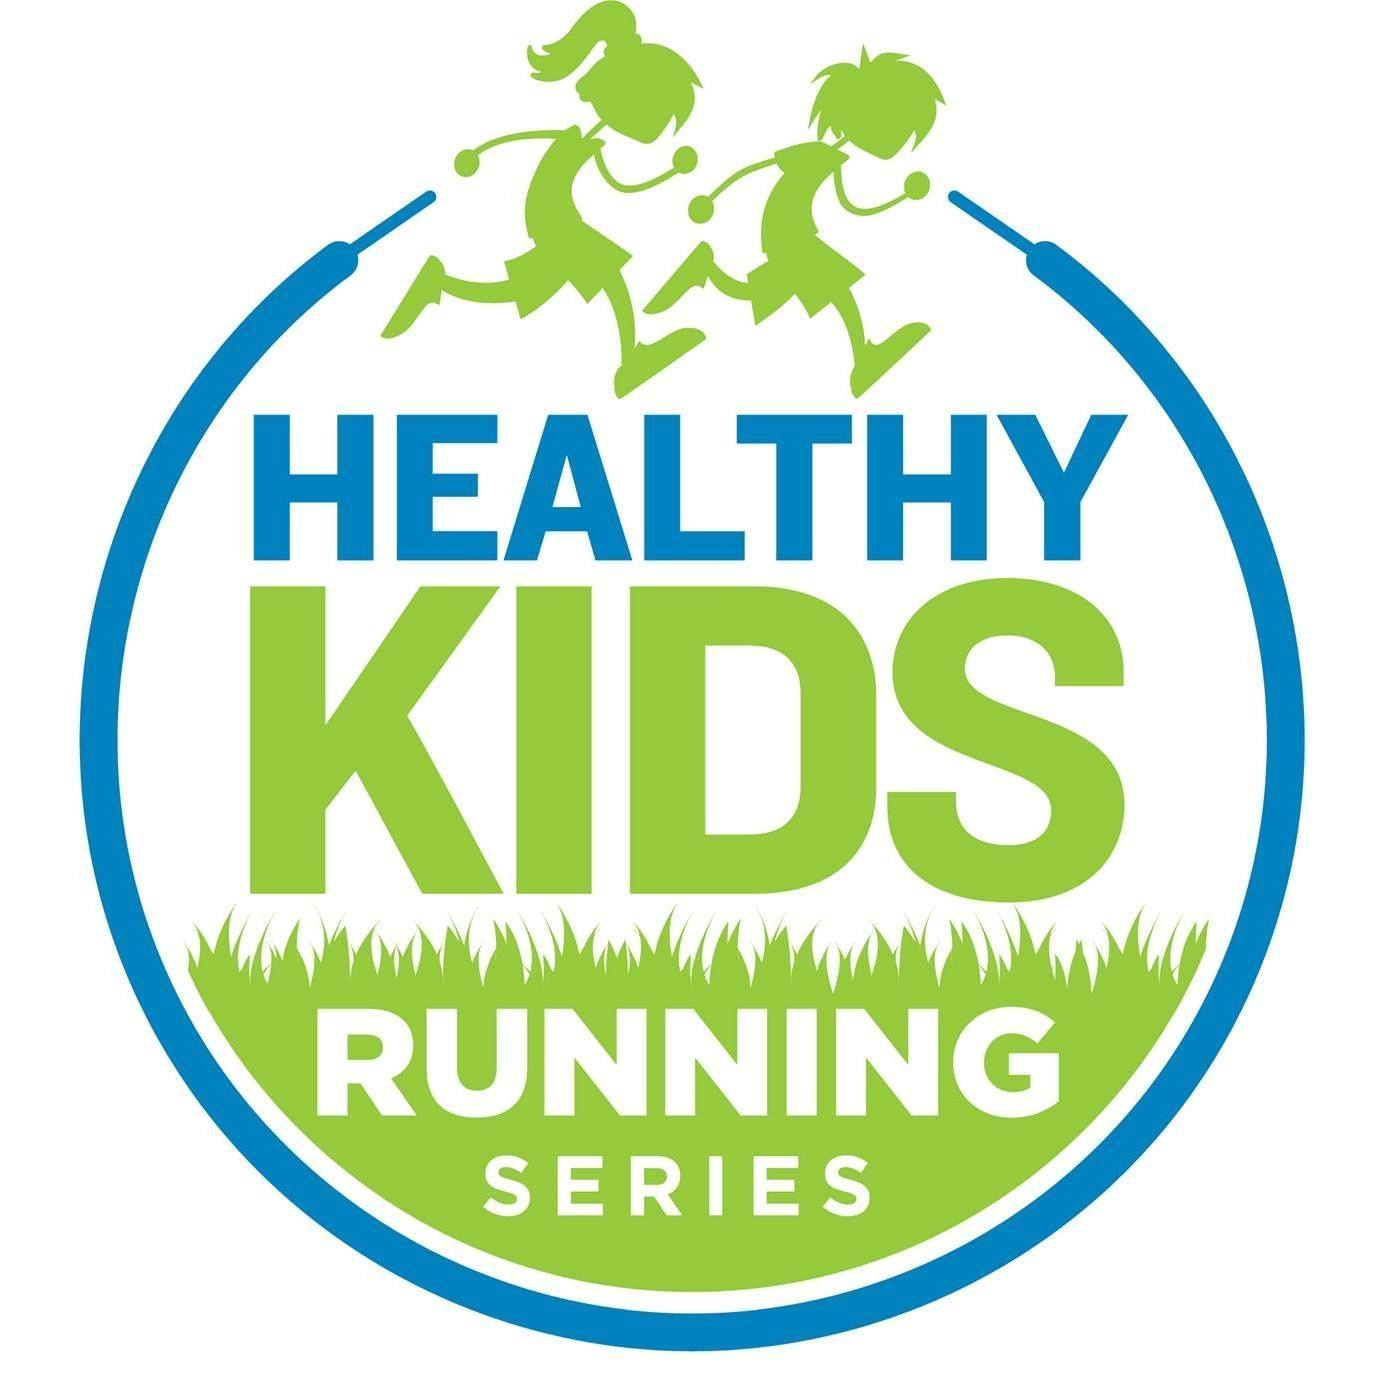 Healthy Kids Running Series Fall - Anacostia-Kenilworth, DC - 2019 Image 1